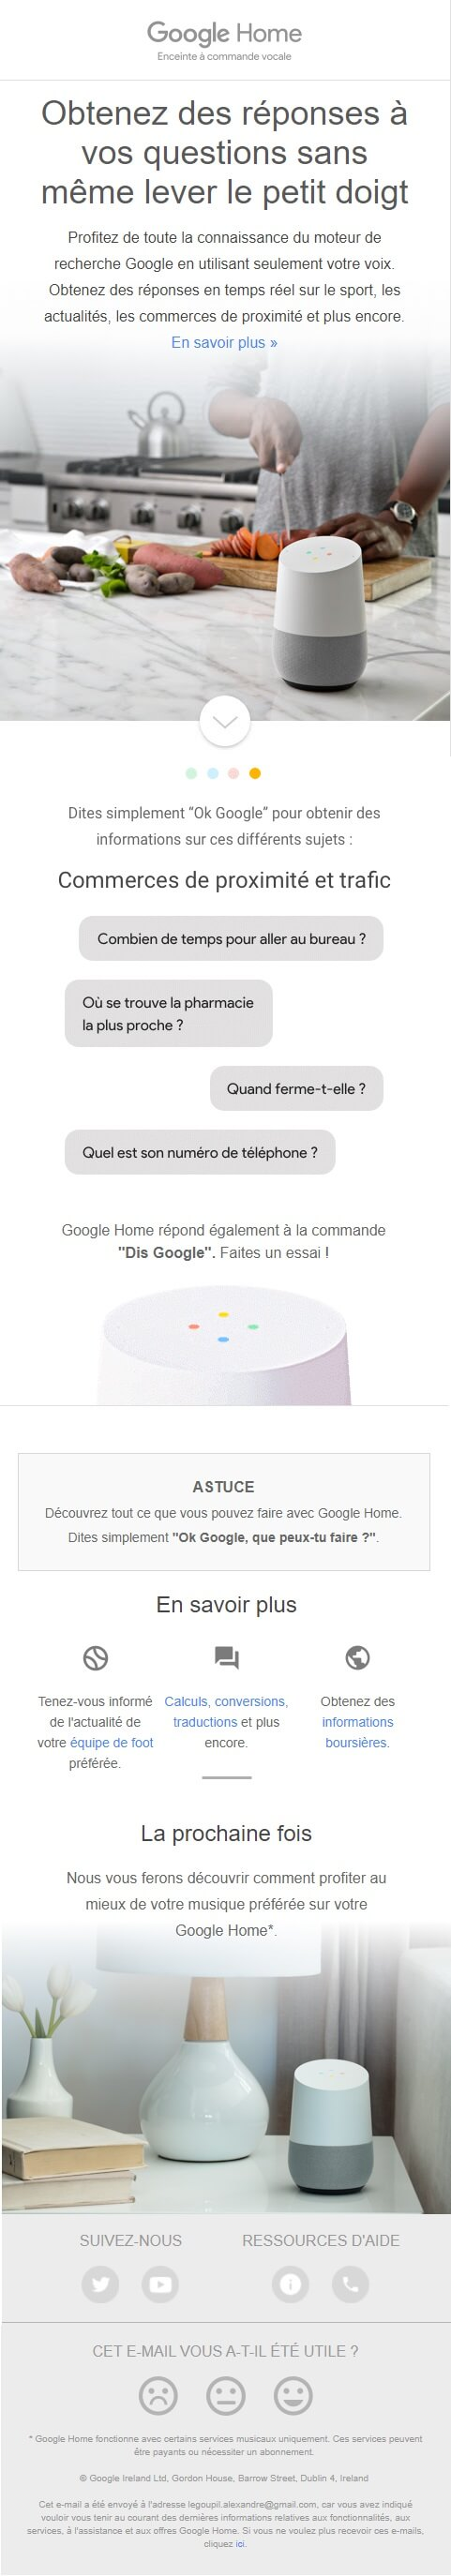 Exemple d'emailing #5 : Google Home